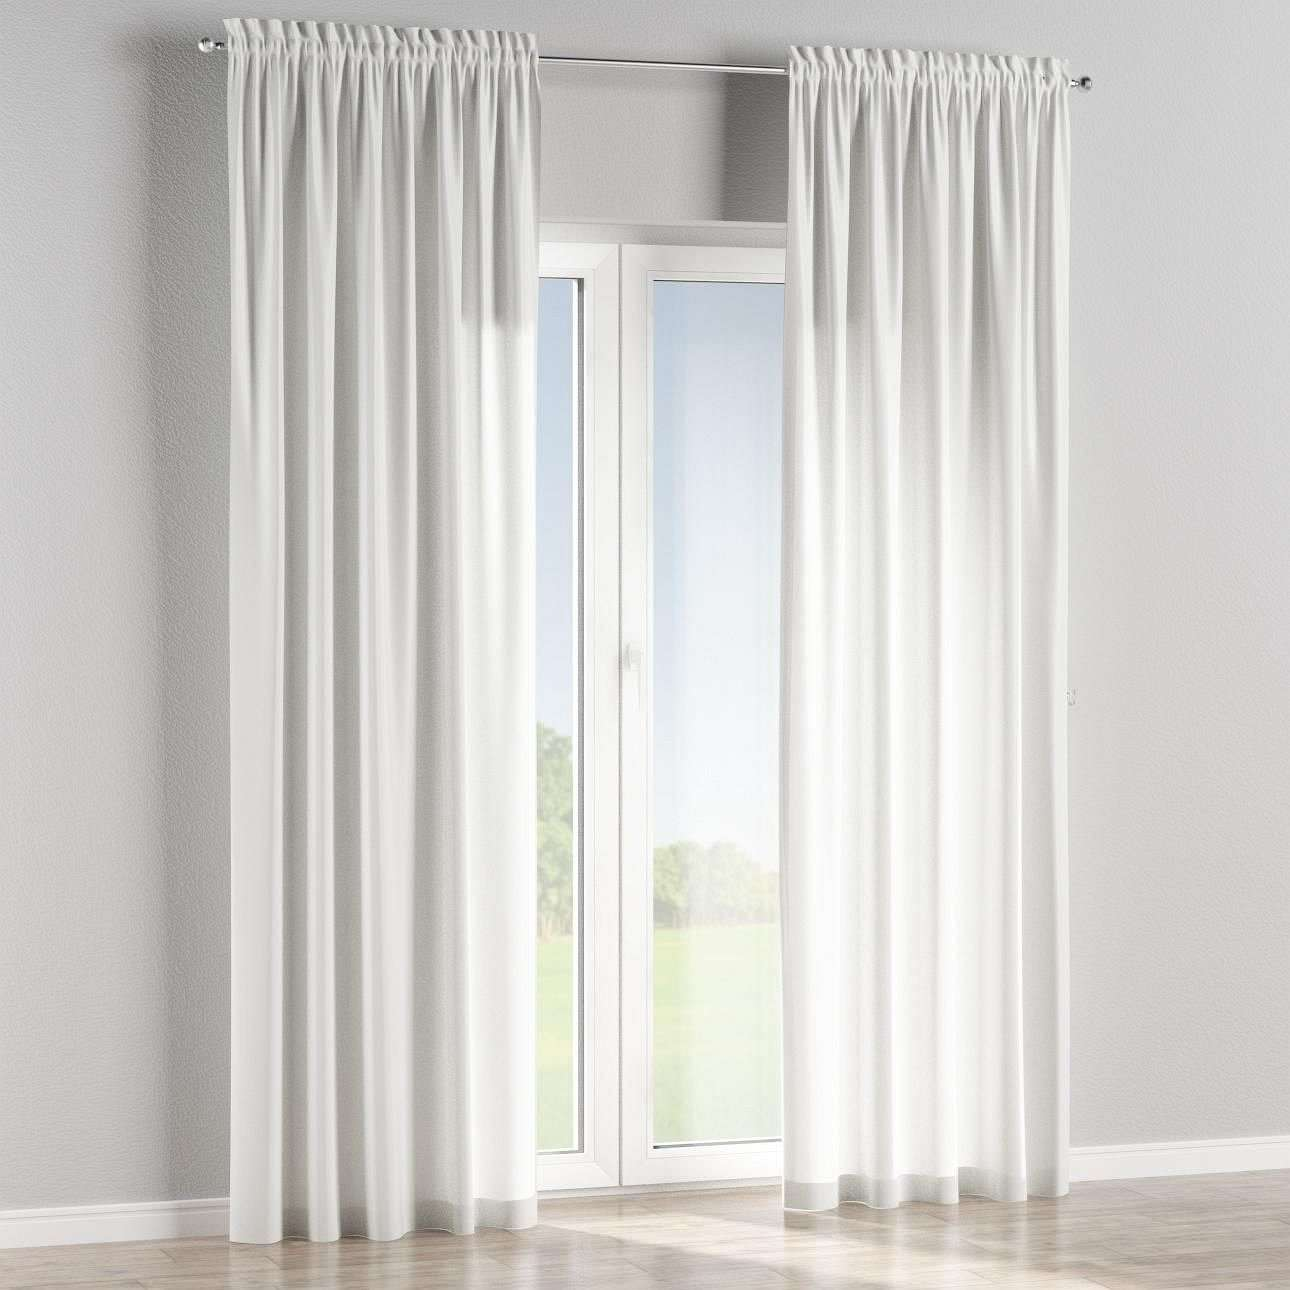 Slot and frill lined curtains in collection Linen , fabric: 392-09